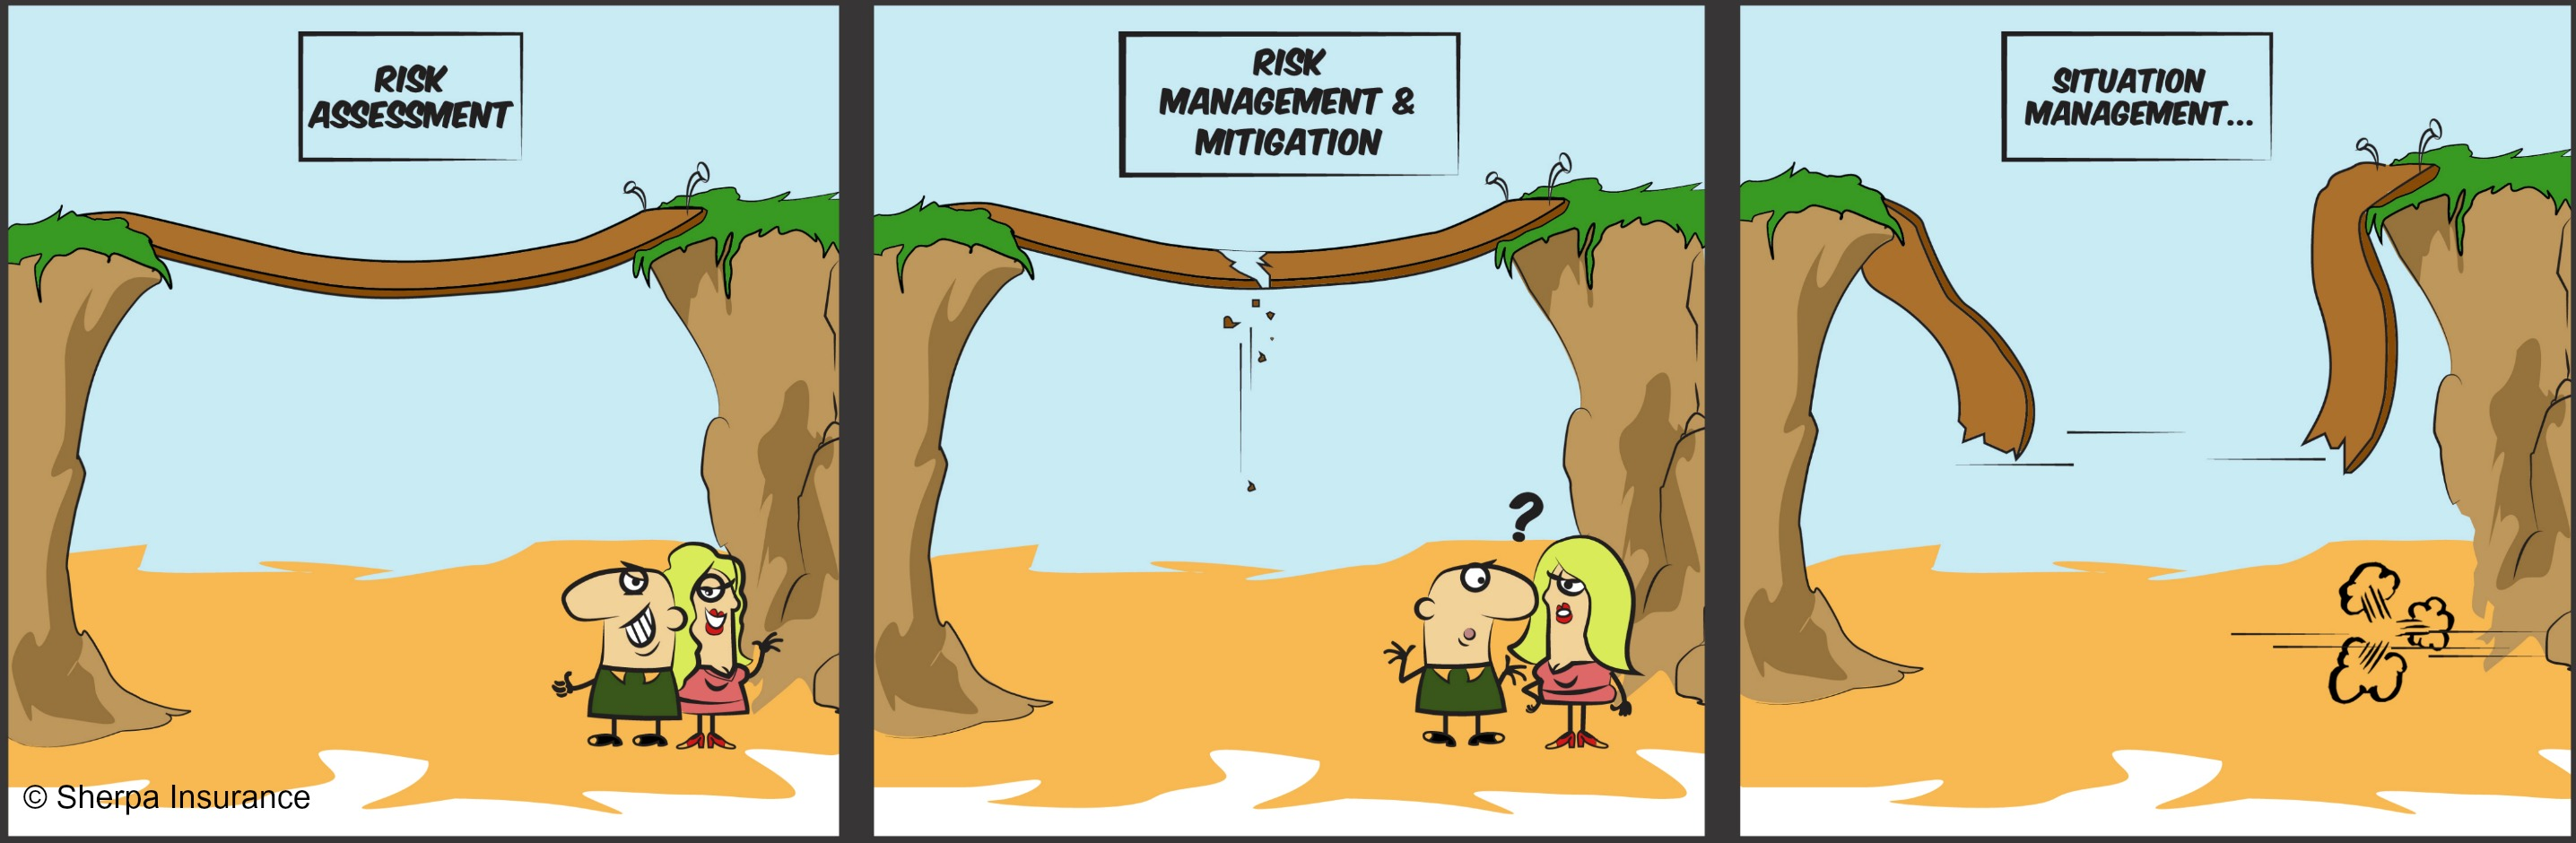 comic-strip-6-risk-management-final